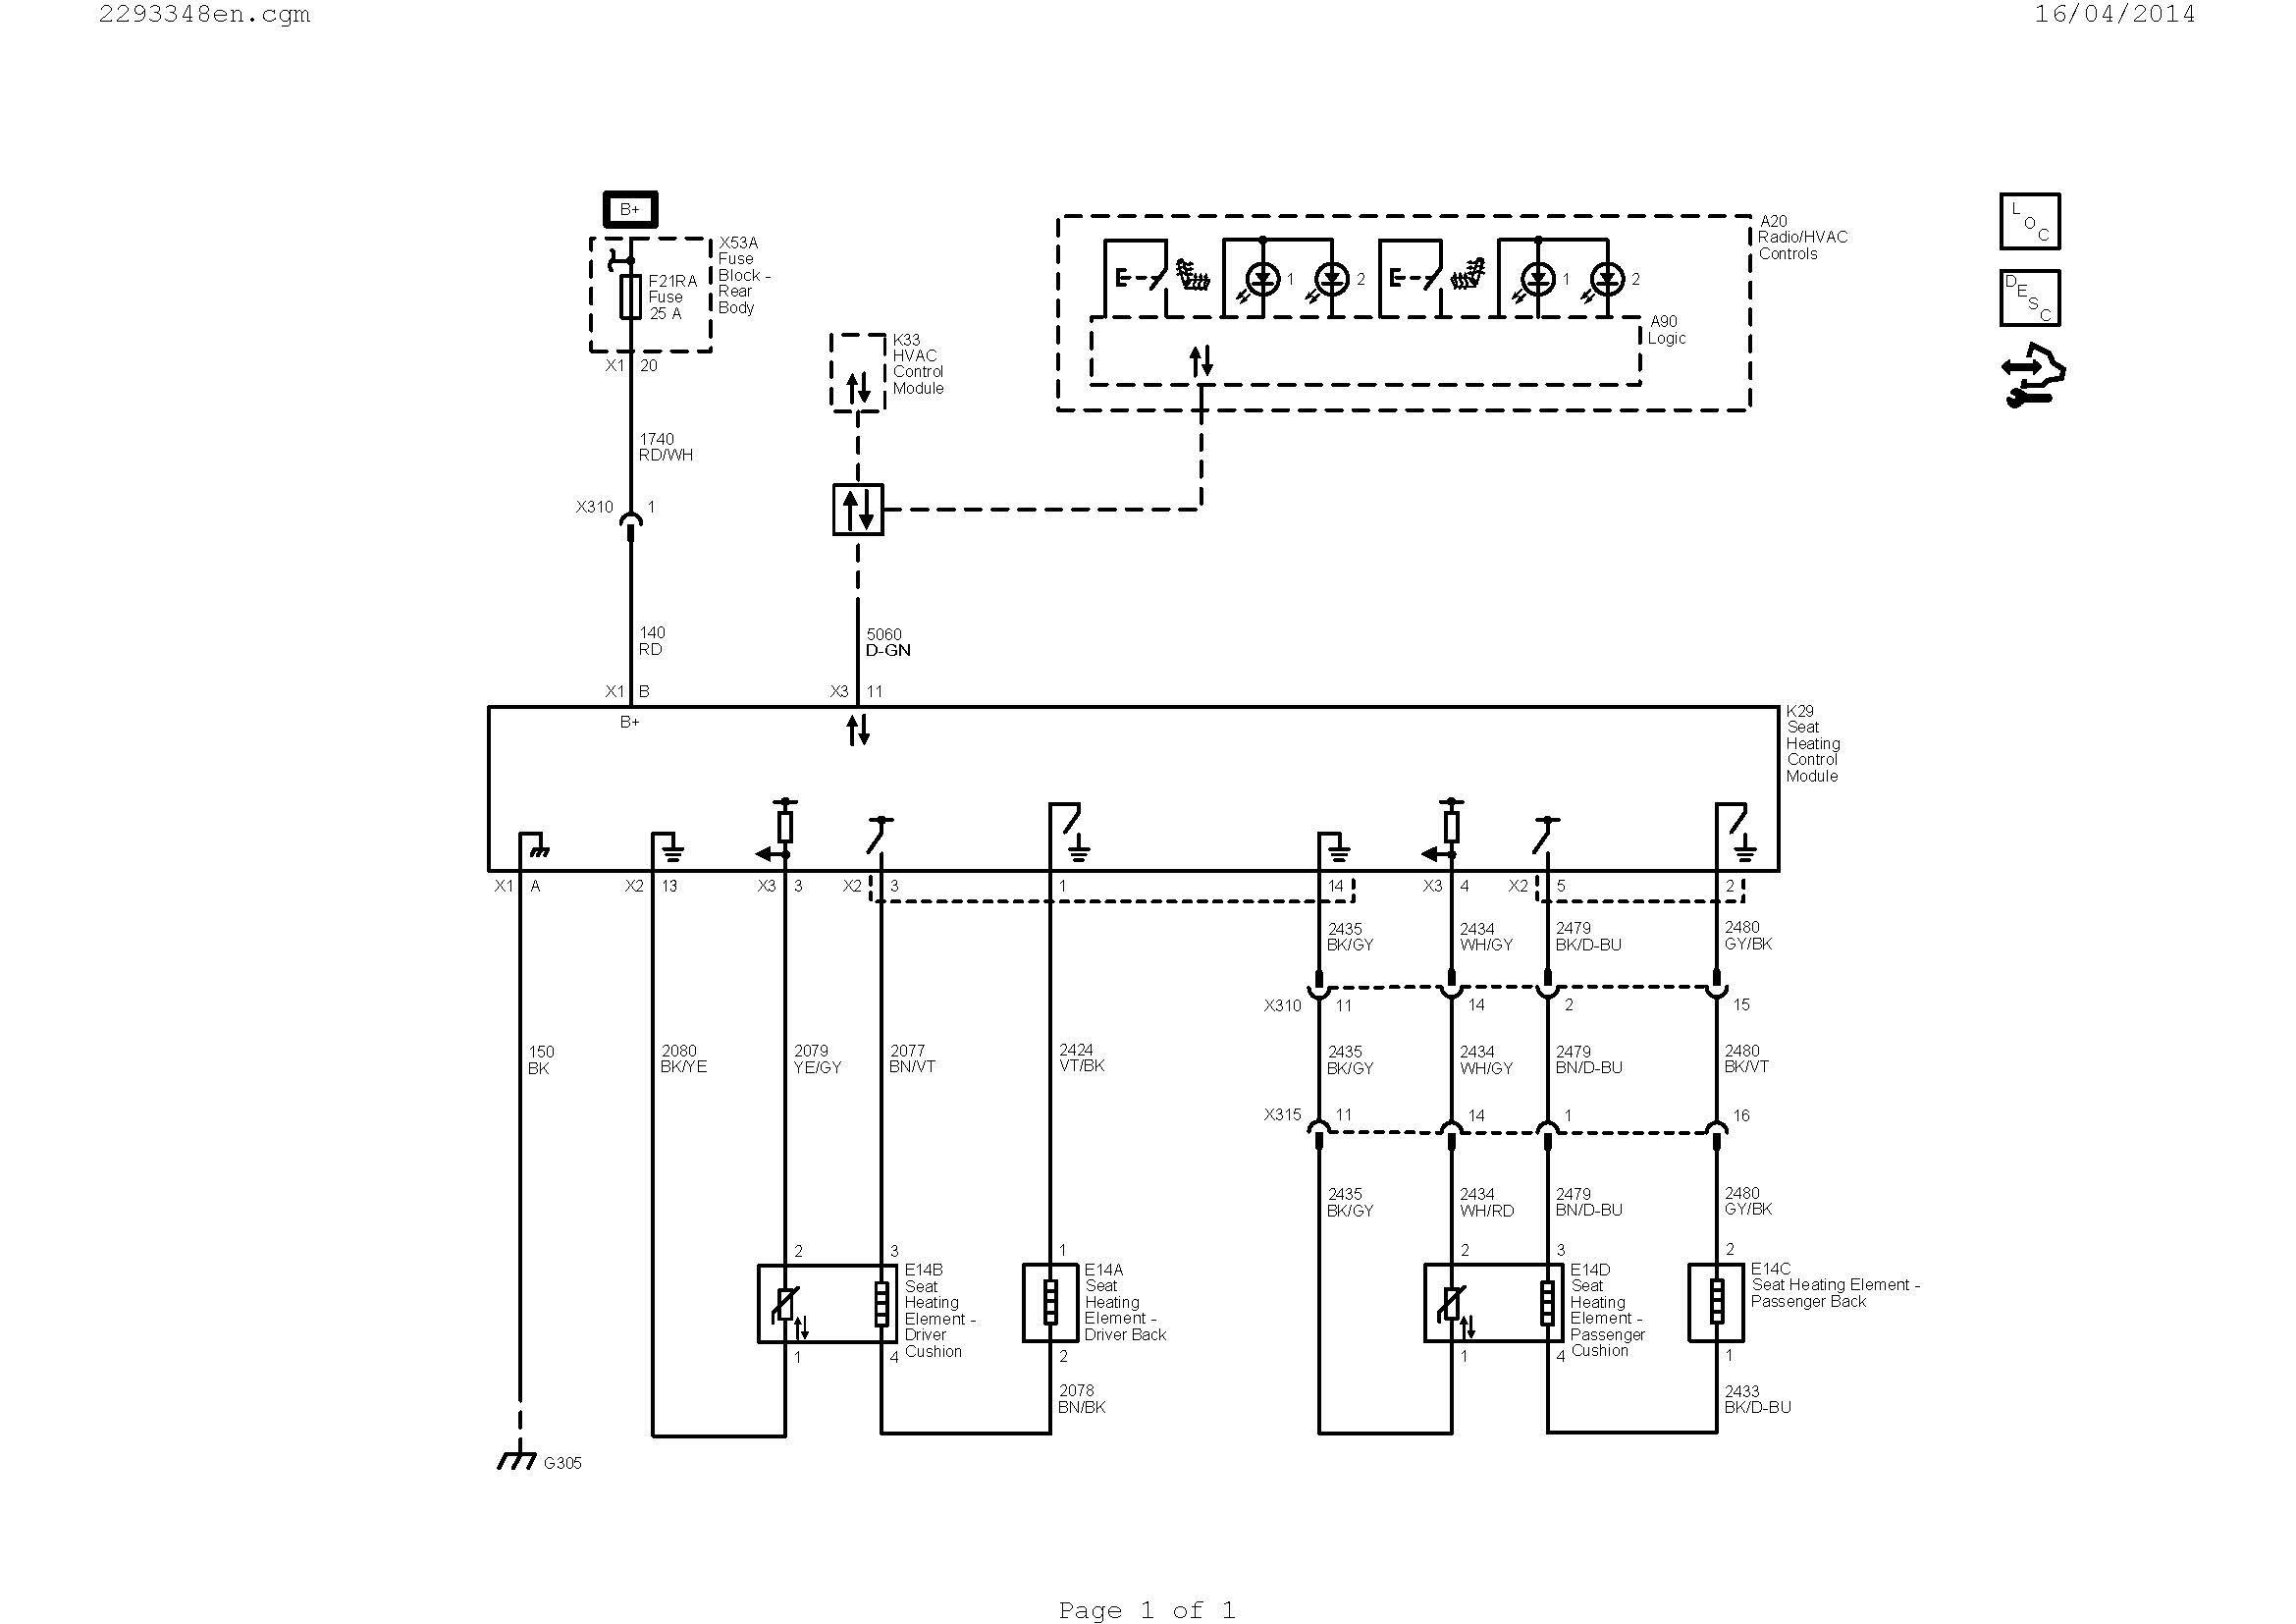 mitsubishi ductless split systems wiring wiring diagram will be a heating wiring diagram ac mini split system wiring diagram trusted wiring diagrams rh wiringhubme today ductless air conditioning systems